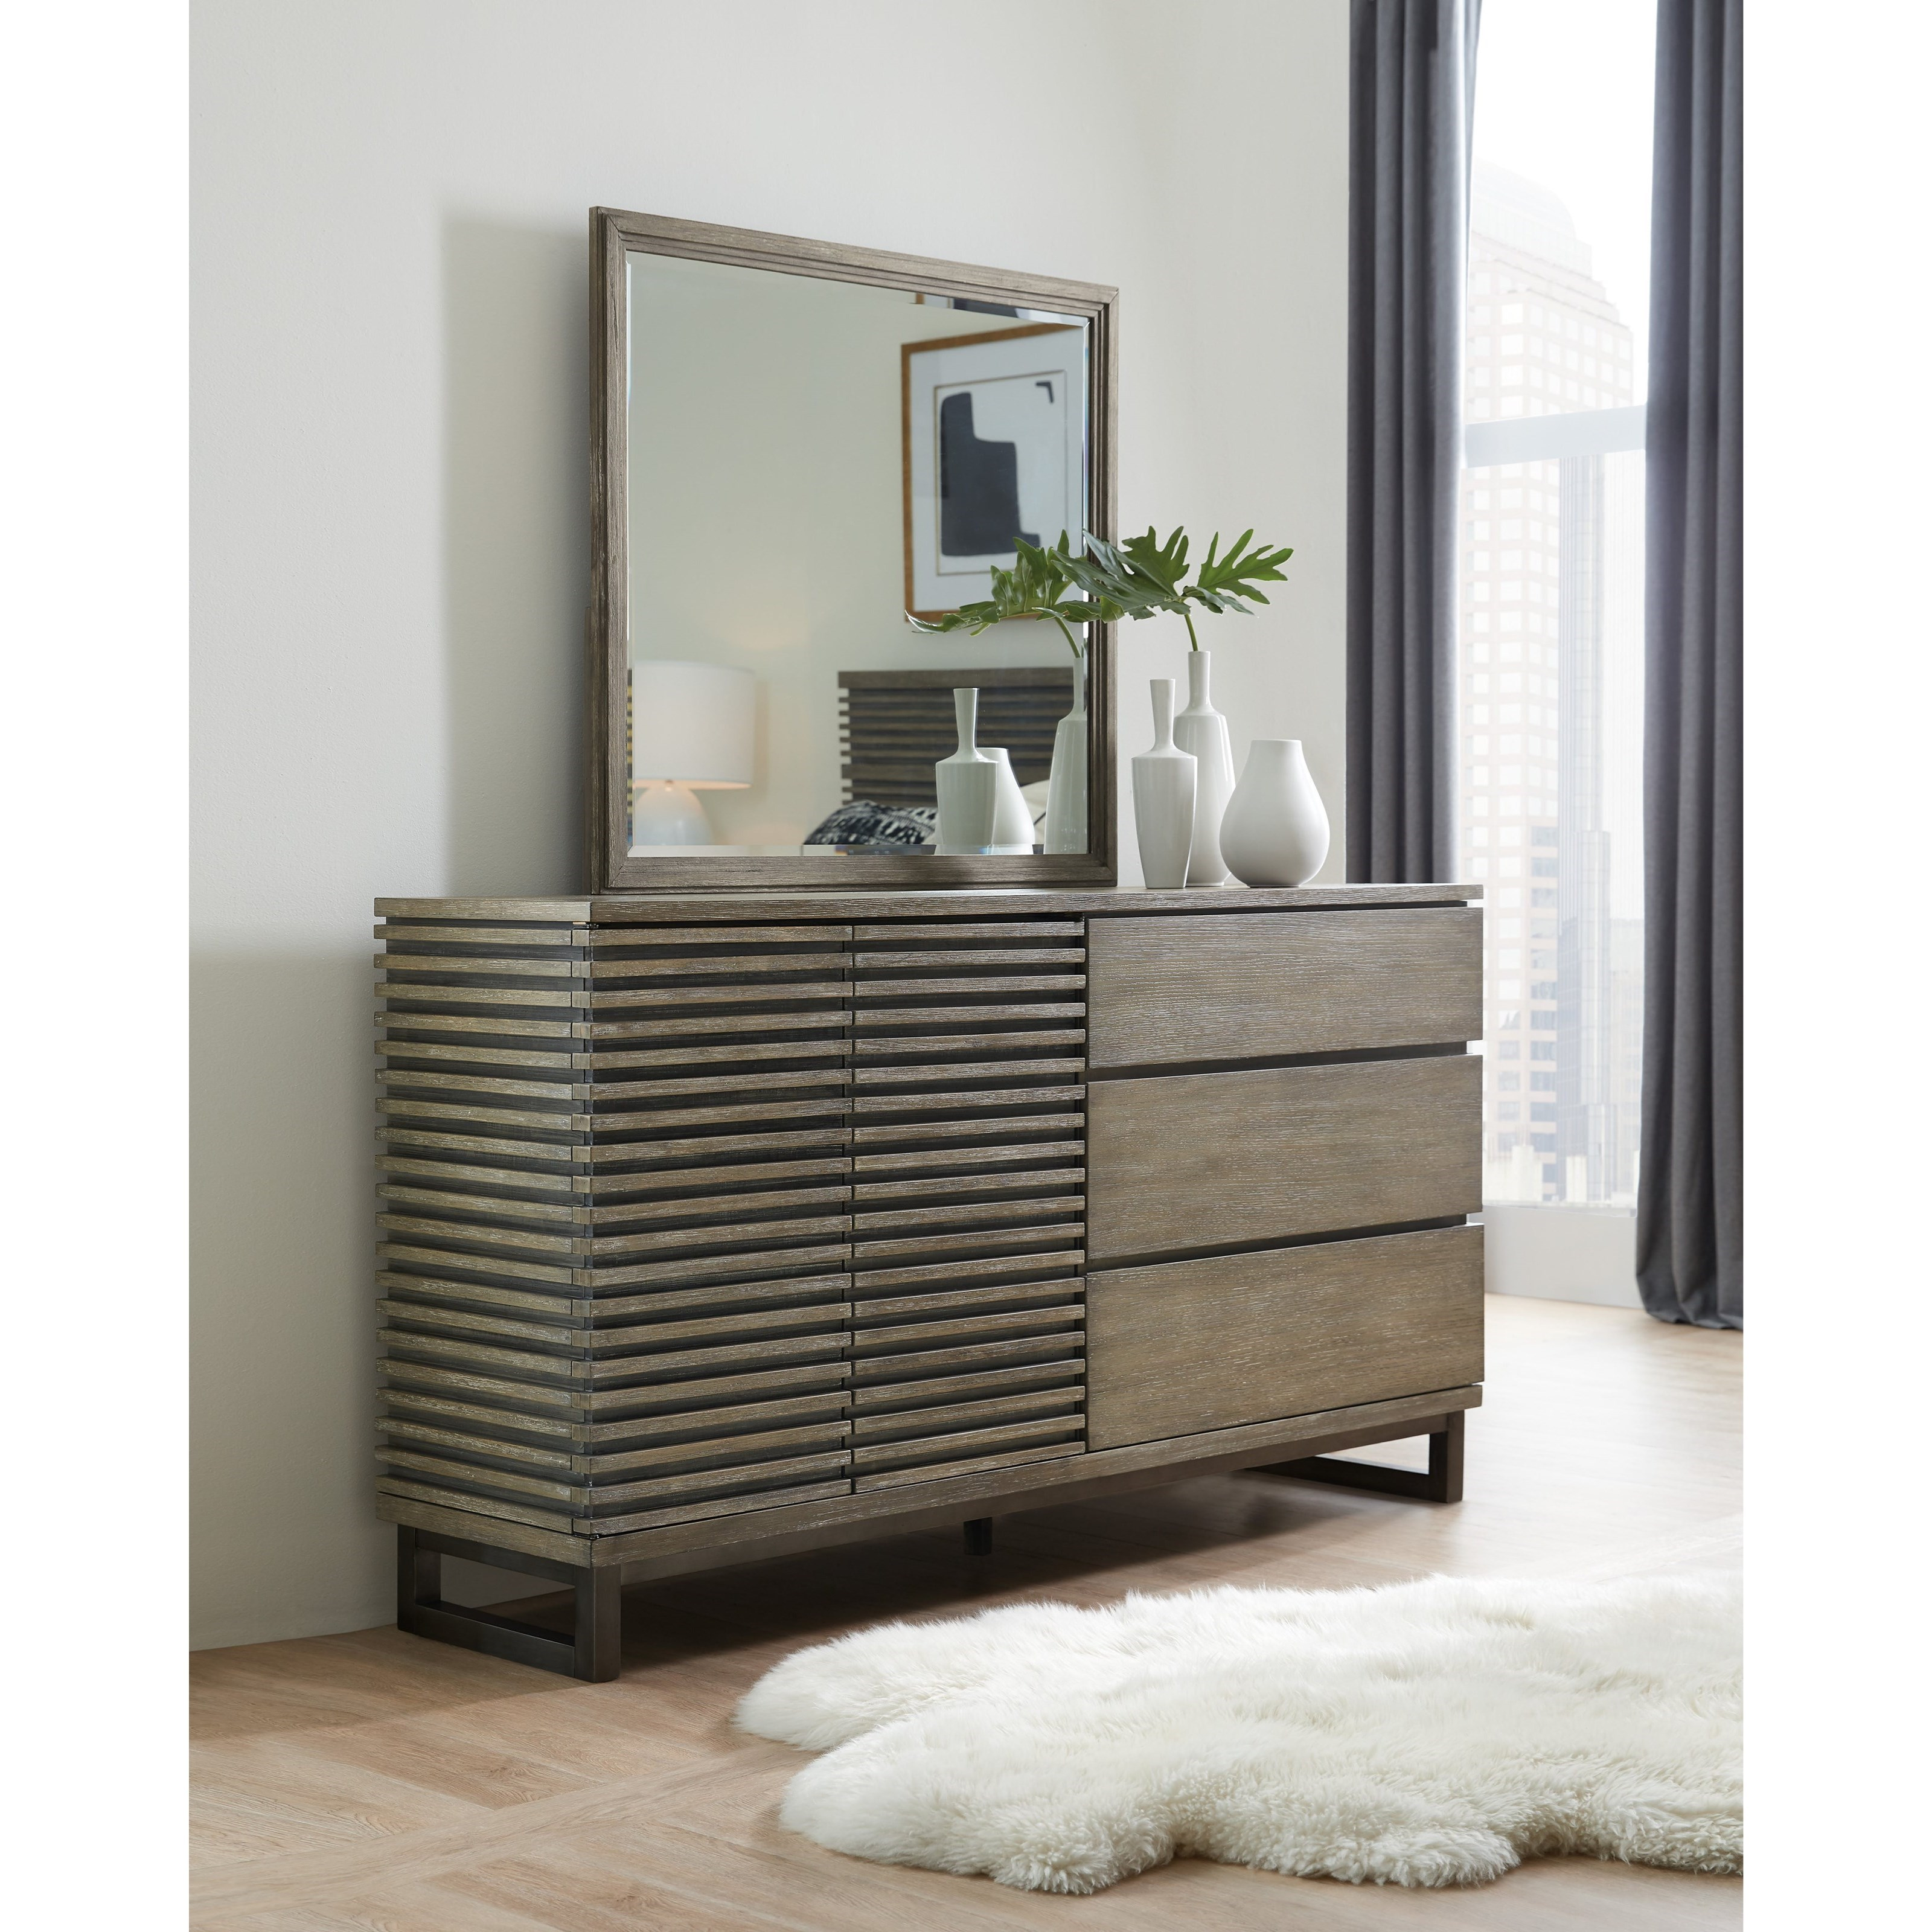 Annex Dresser and Mirror Set by Hooker Furniture at Alison Craig Home Furnishings